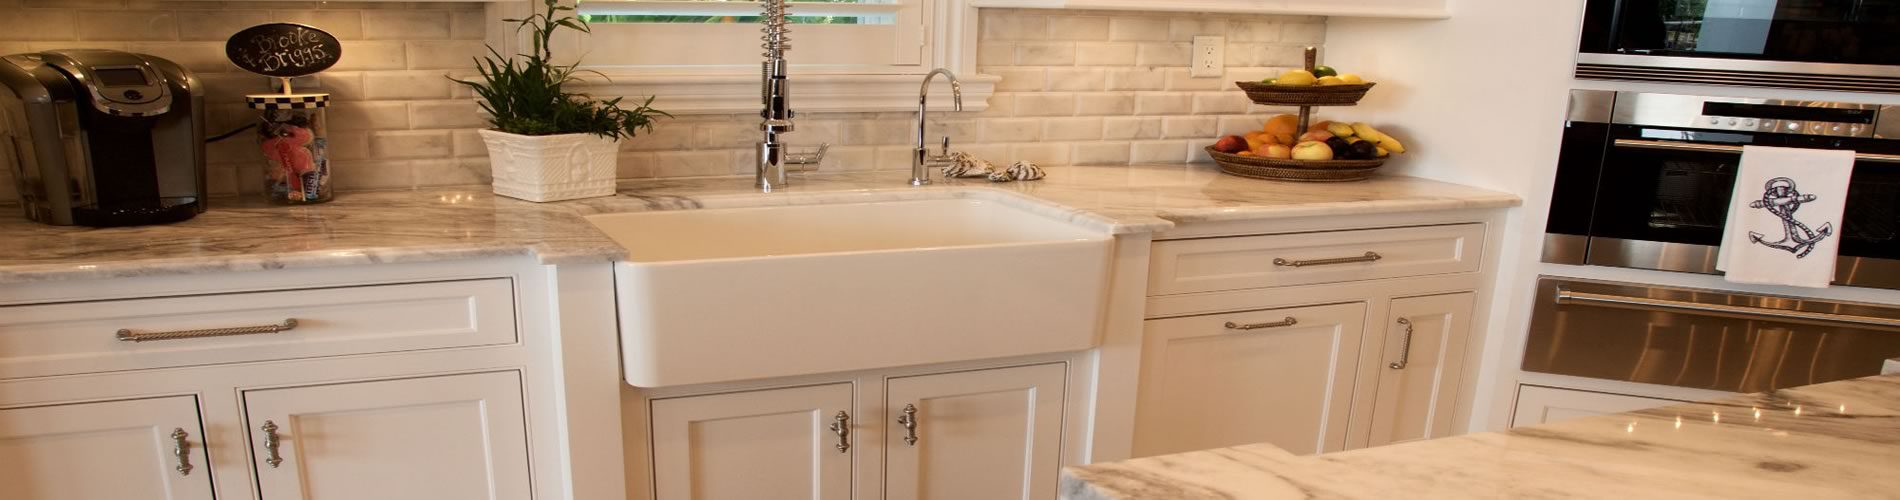 Kitchen Cupboards and counter tops